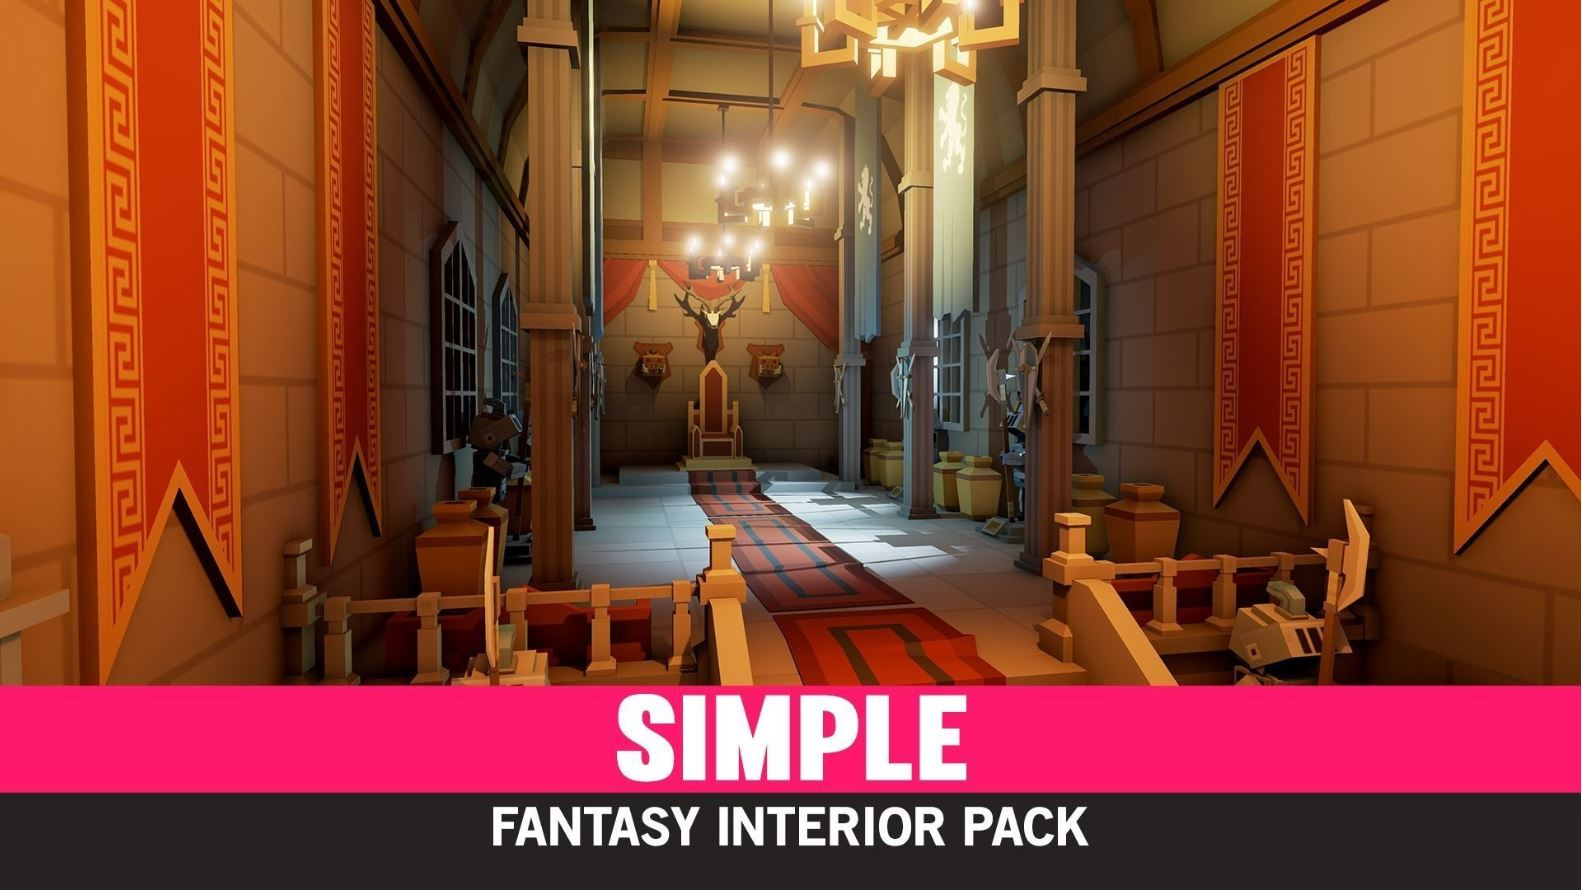 Simple Fantasy Interiors - Cartoon Assets - Model 3D Download For Free